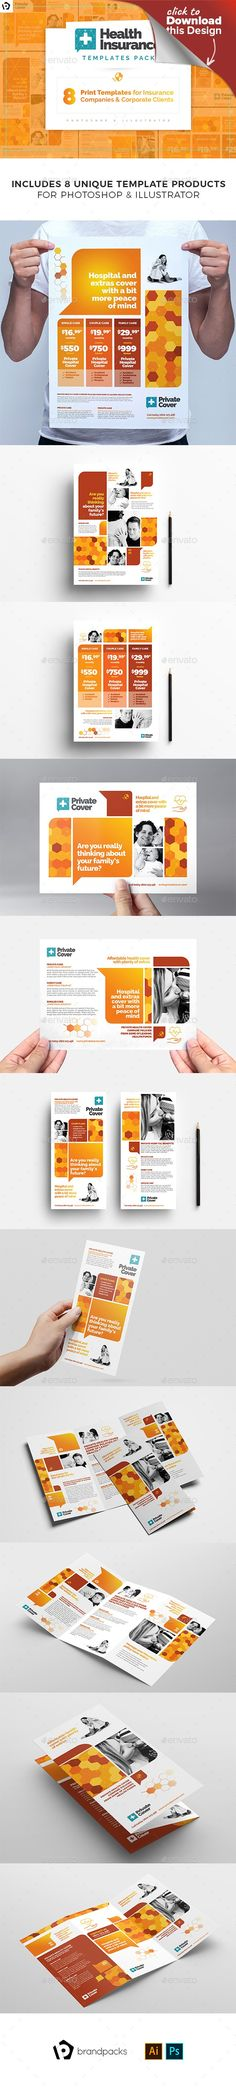 3 fold brochure template, accountant, accounting, b2b, BrandPacks, brochure template, business, consultant, corporate, corporate style, flyer, flyer template, flyers, geometric, health insurance, insurance, layout, orange, poster, poster template, posters, professional, tri fold brochure template, trifold brochure template Corporate Templates Bundle for Adobe Photoshop & Adobe Illustrator Create professional print advertisements, posters & flyers for corporate clients such as accoun...